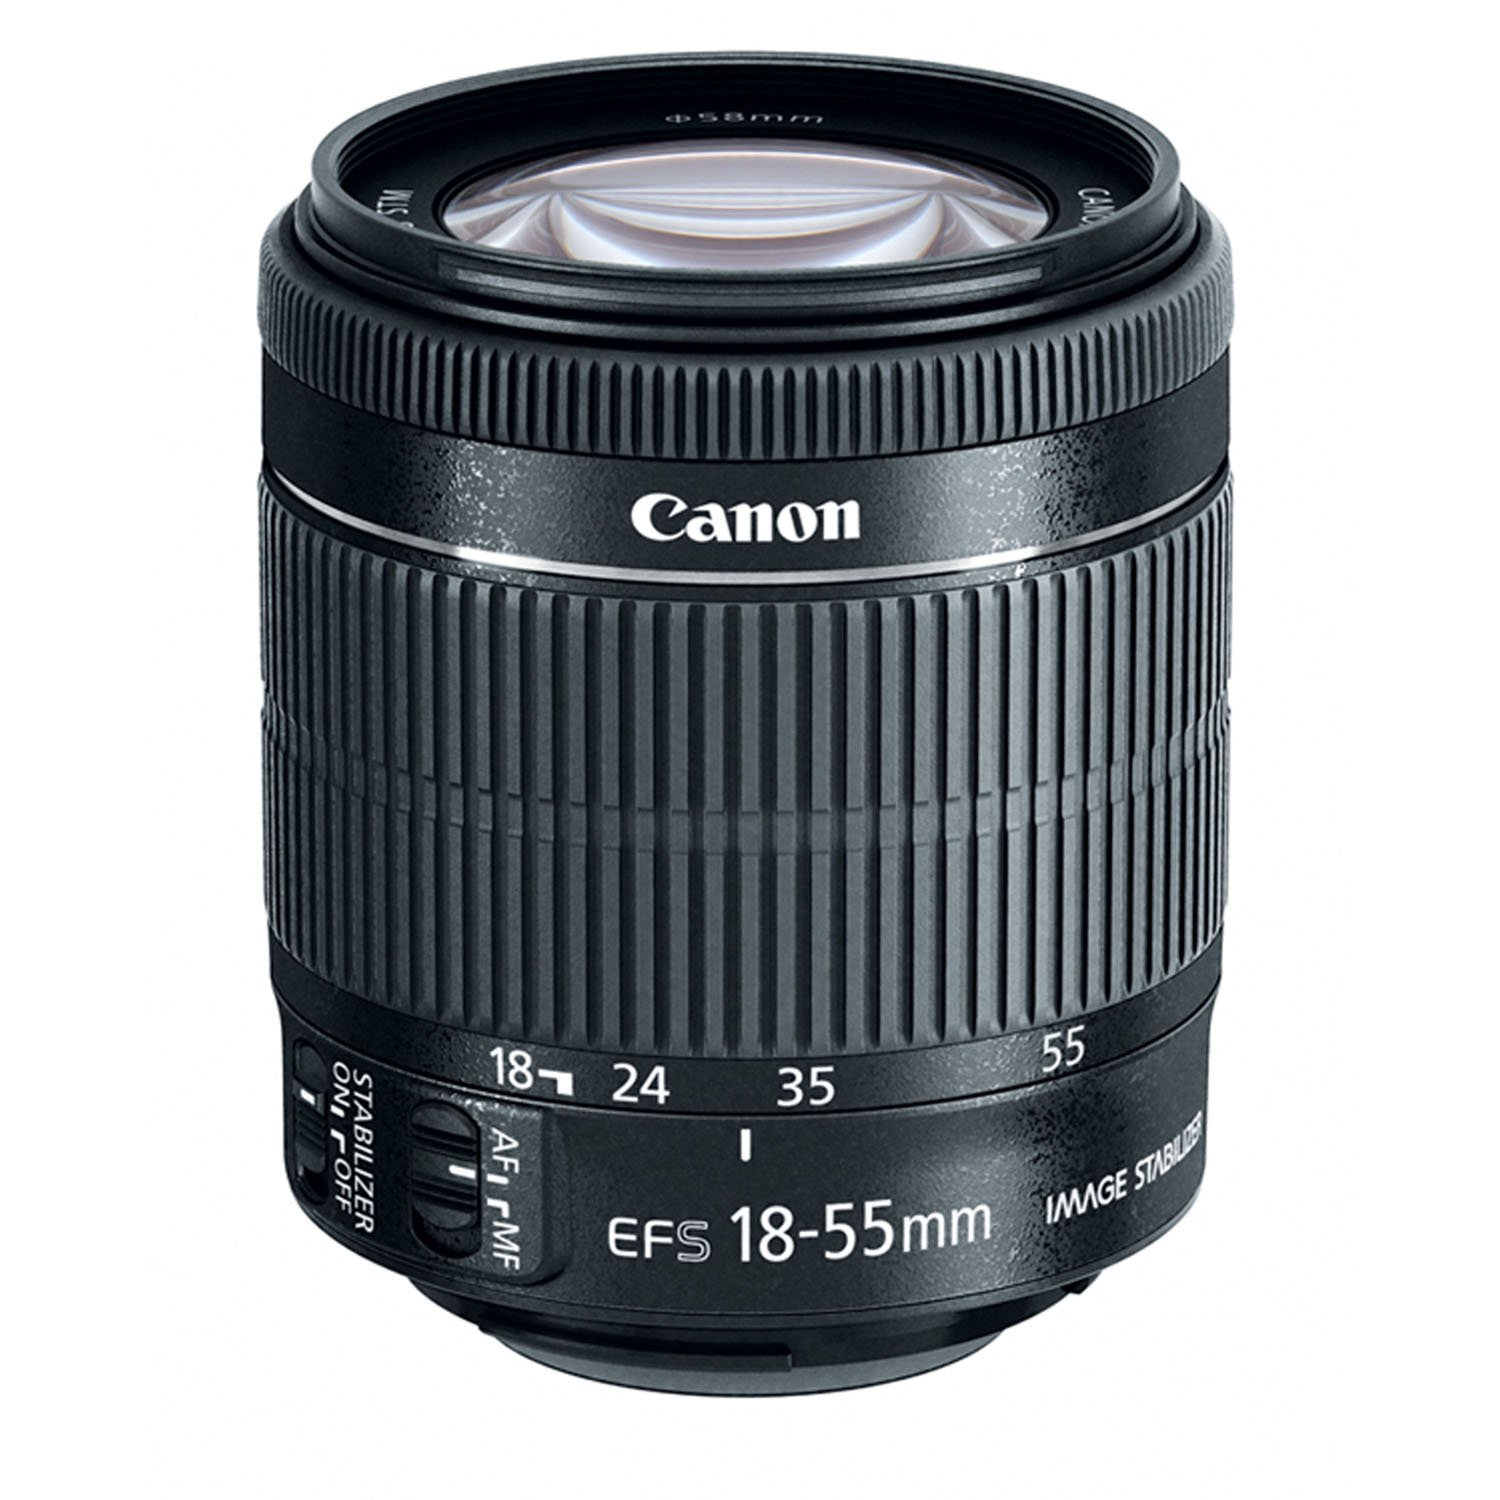 Canon EF-S 18-55mm f/3.5-5.6 IS STM Zoom Lens (Bulk Packaging) by Canon